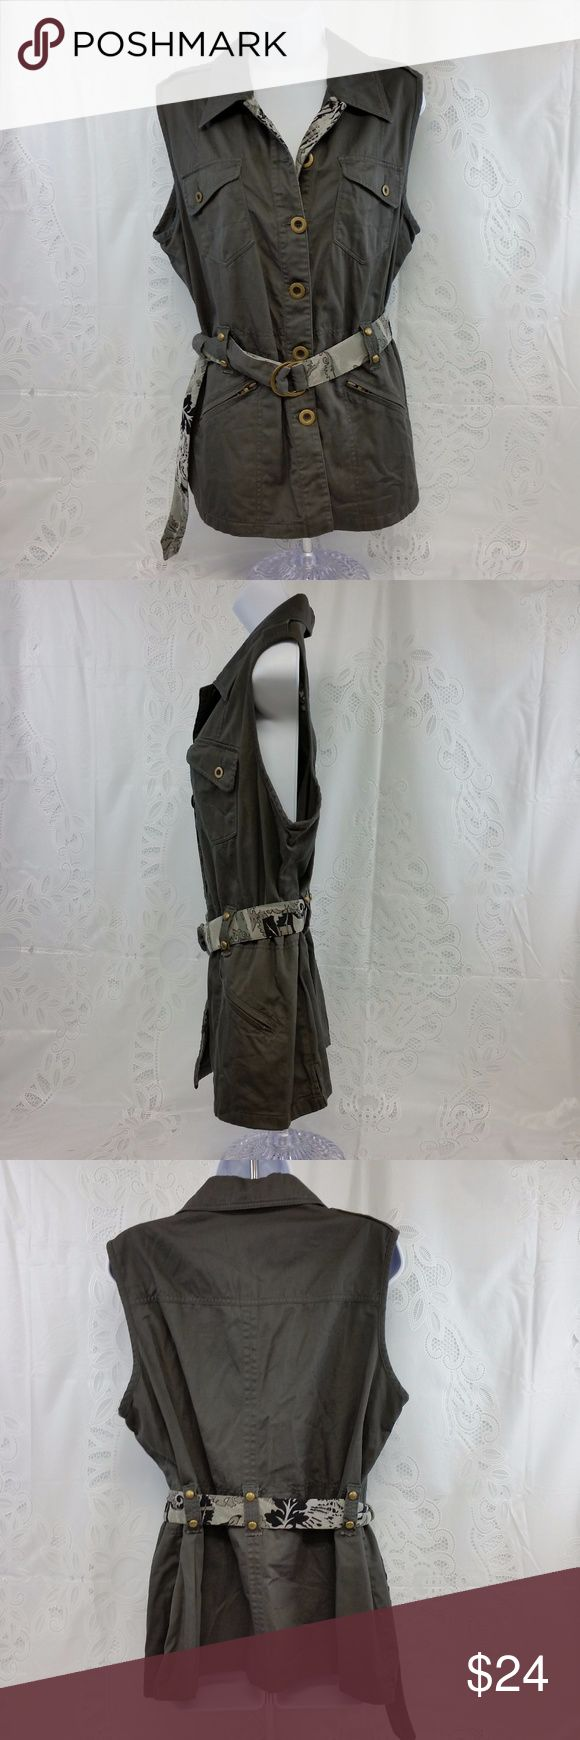 BNW 16 Gray Sleeveless Jacket w/ Reversible Belt This is a size 16.  The belt is reversible.  There are some loose strings.  It is 100% cotton. Measurements are shown in the pictures.  Let me know if you have any questions. :) B.N.W. Jackets & Coats